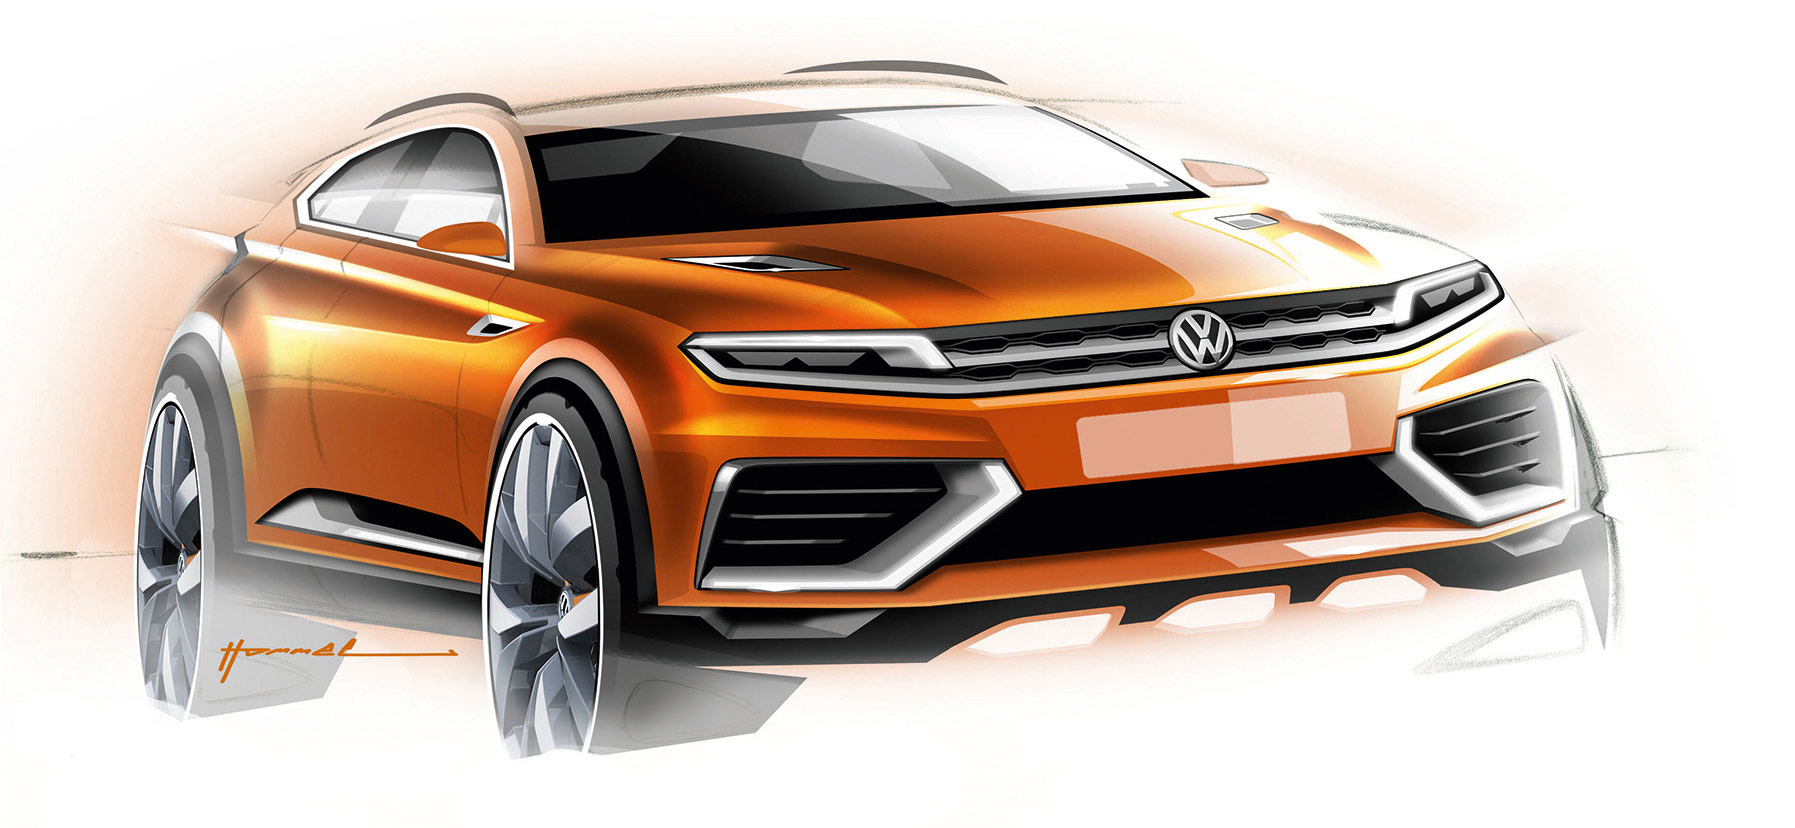 volkswagen-crossblue-coupe-concept-005